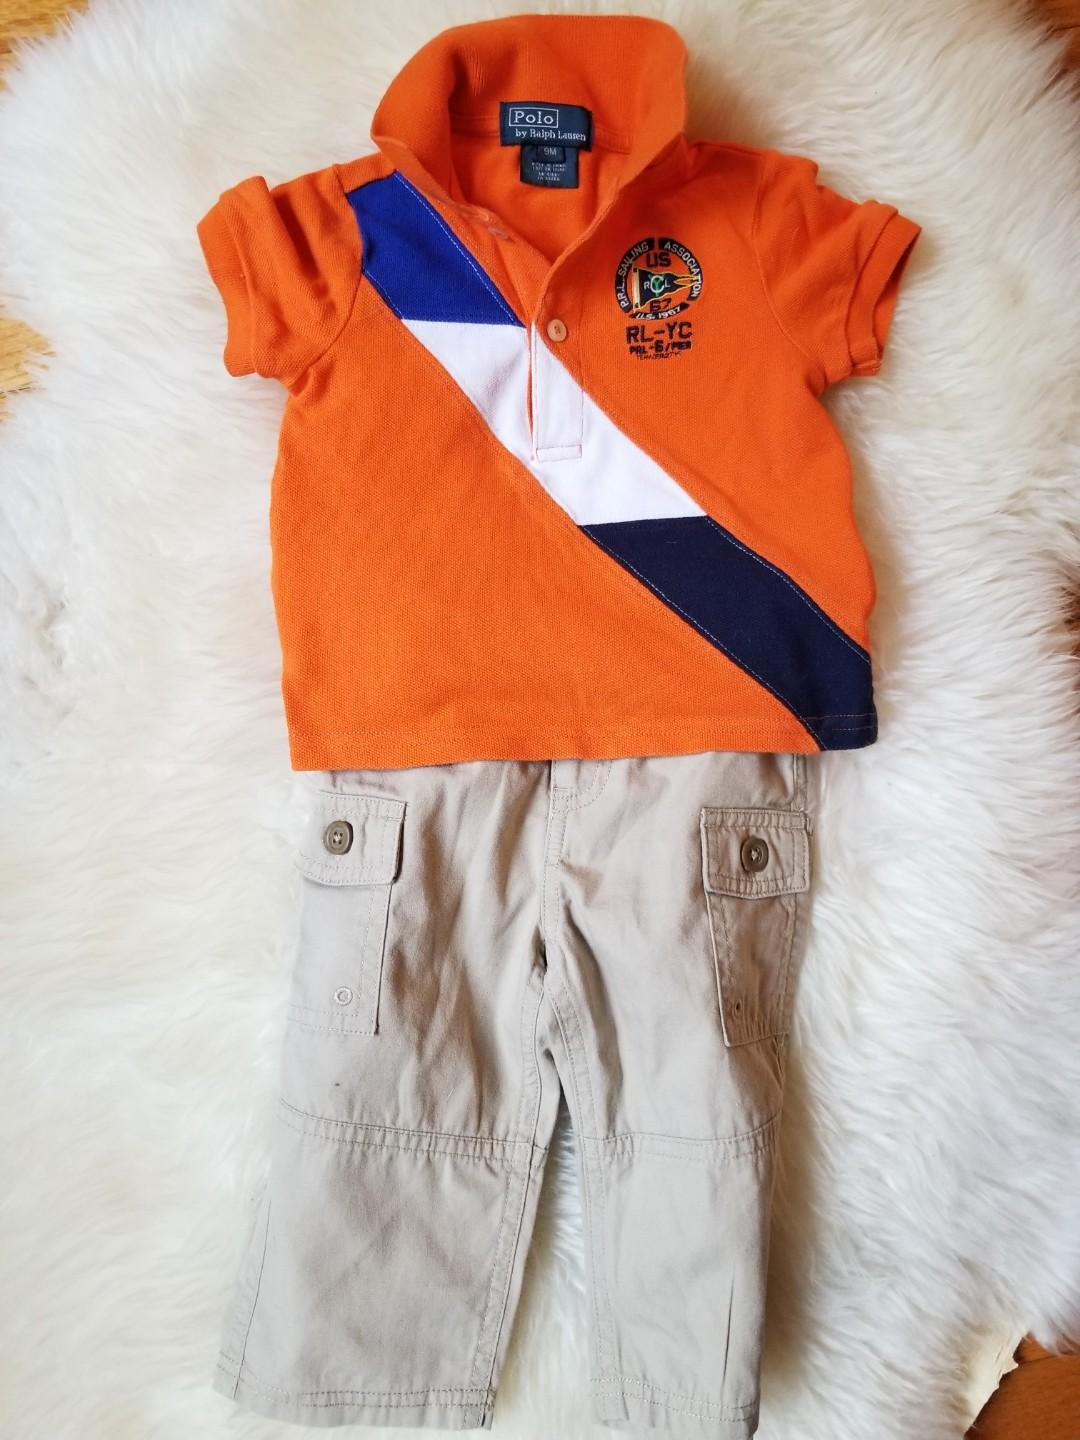 Ralph Lauren rugby top and bottom size 9 months. Pick up 20 Bay or Yorkville or upper beaches. New condition. Each $10 and up or both for $16